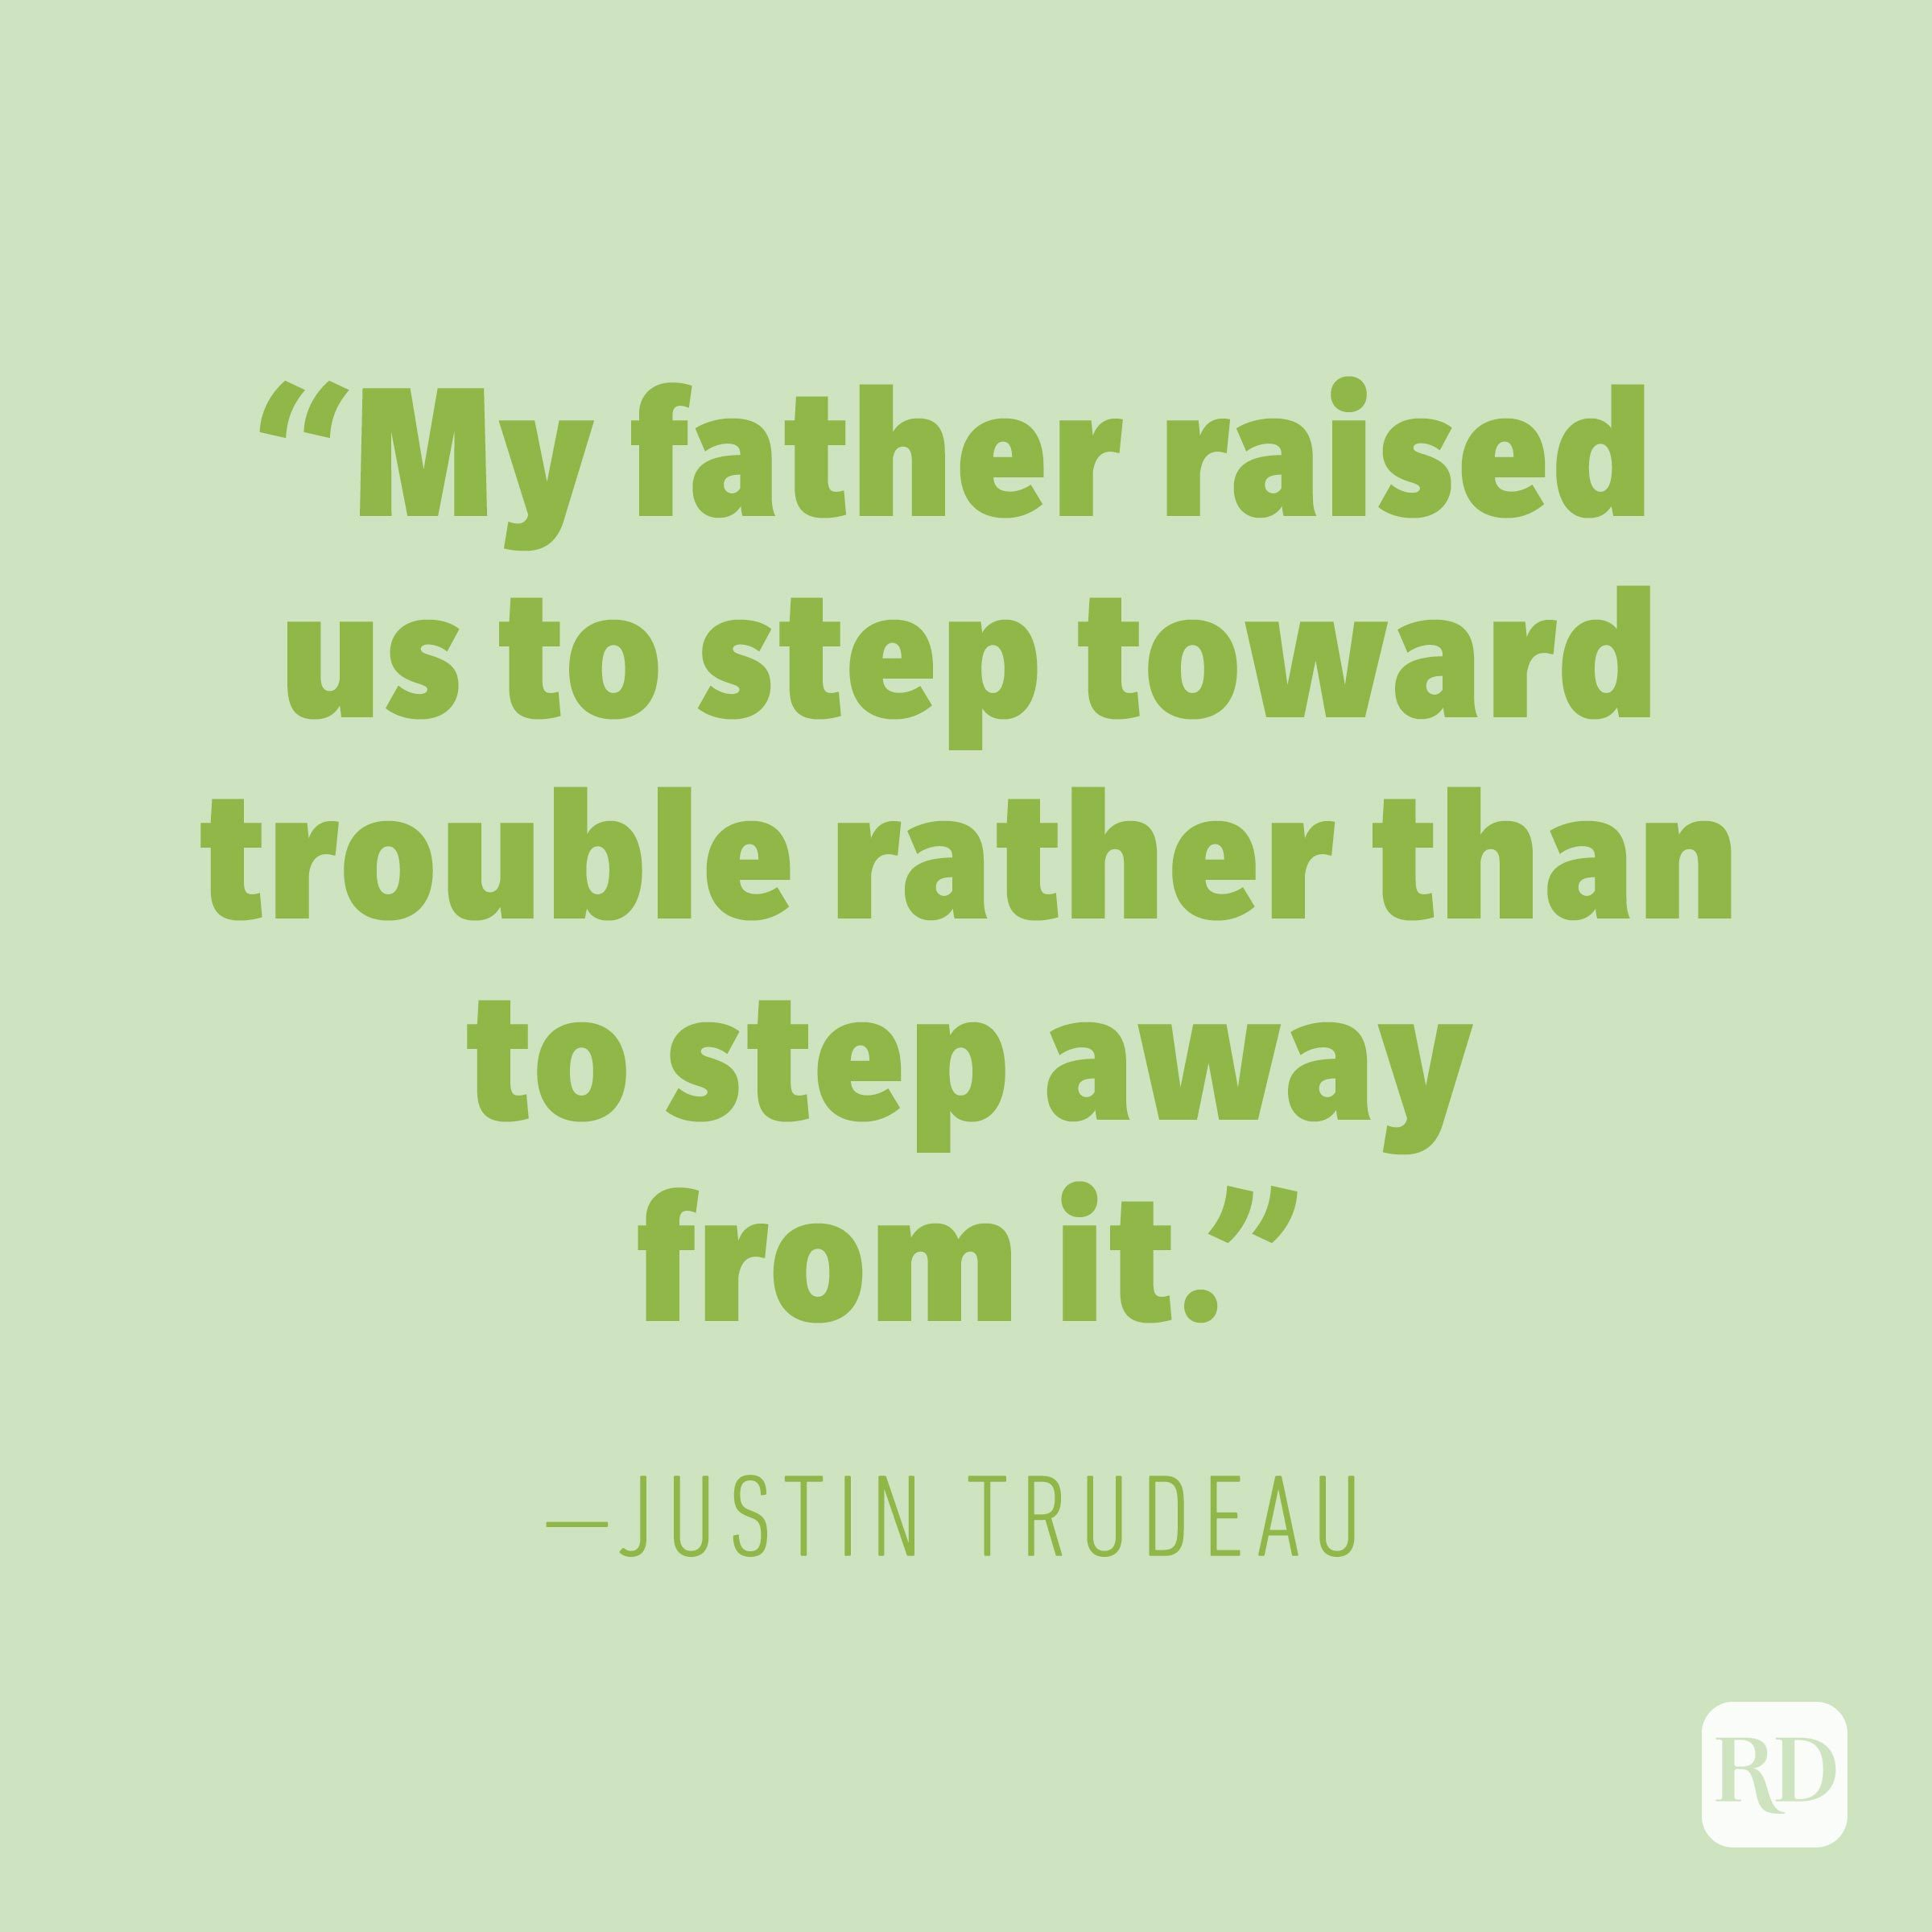 """My father raised us to step toward trouble rather than to step away from it."" —JUSTIN TRUDEAU"